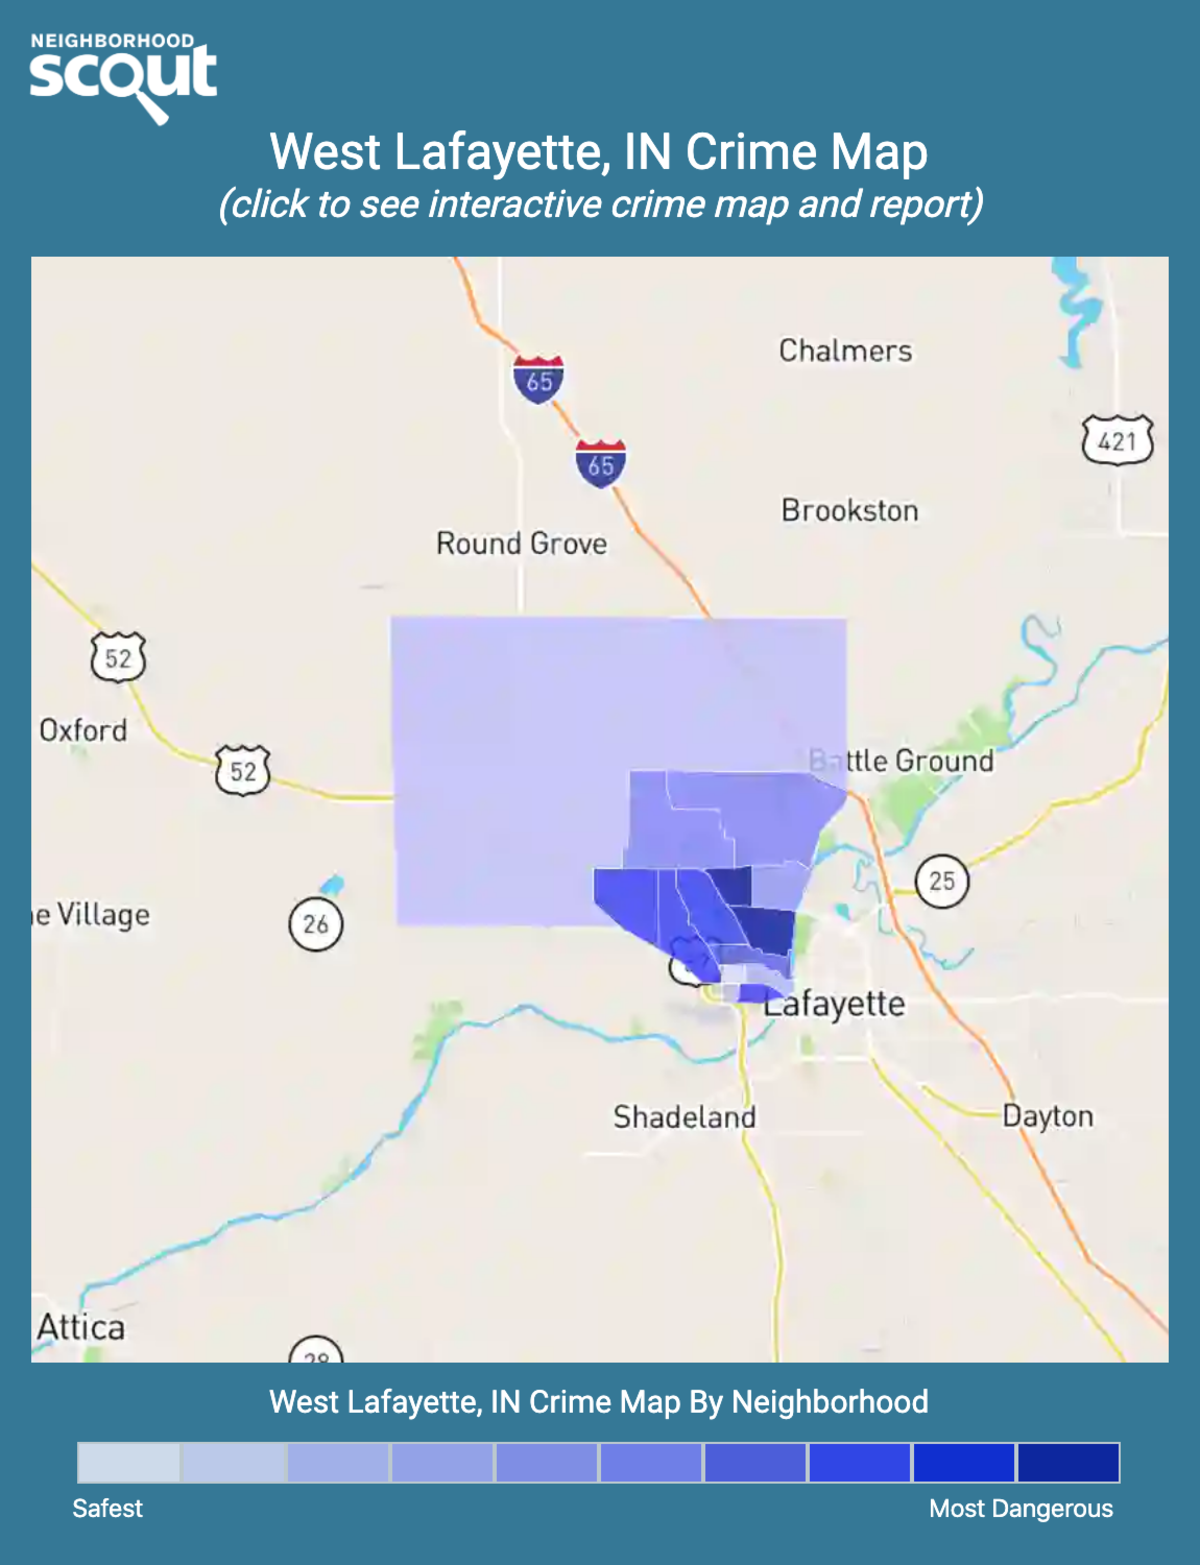 West Lafayette, Indiana crime map